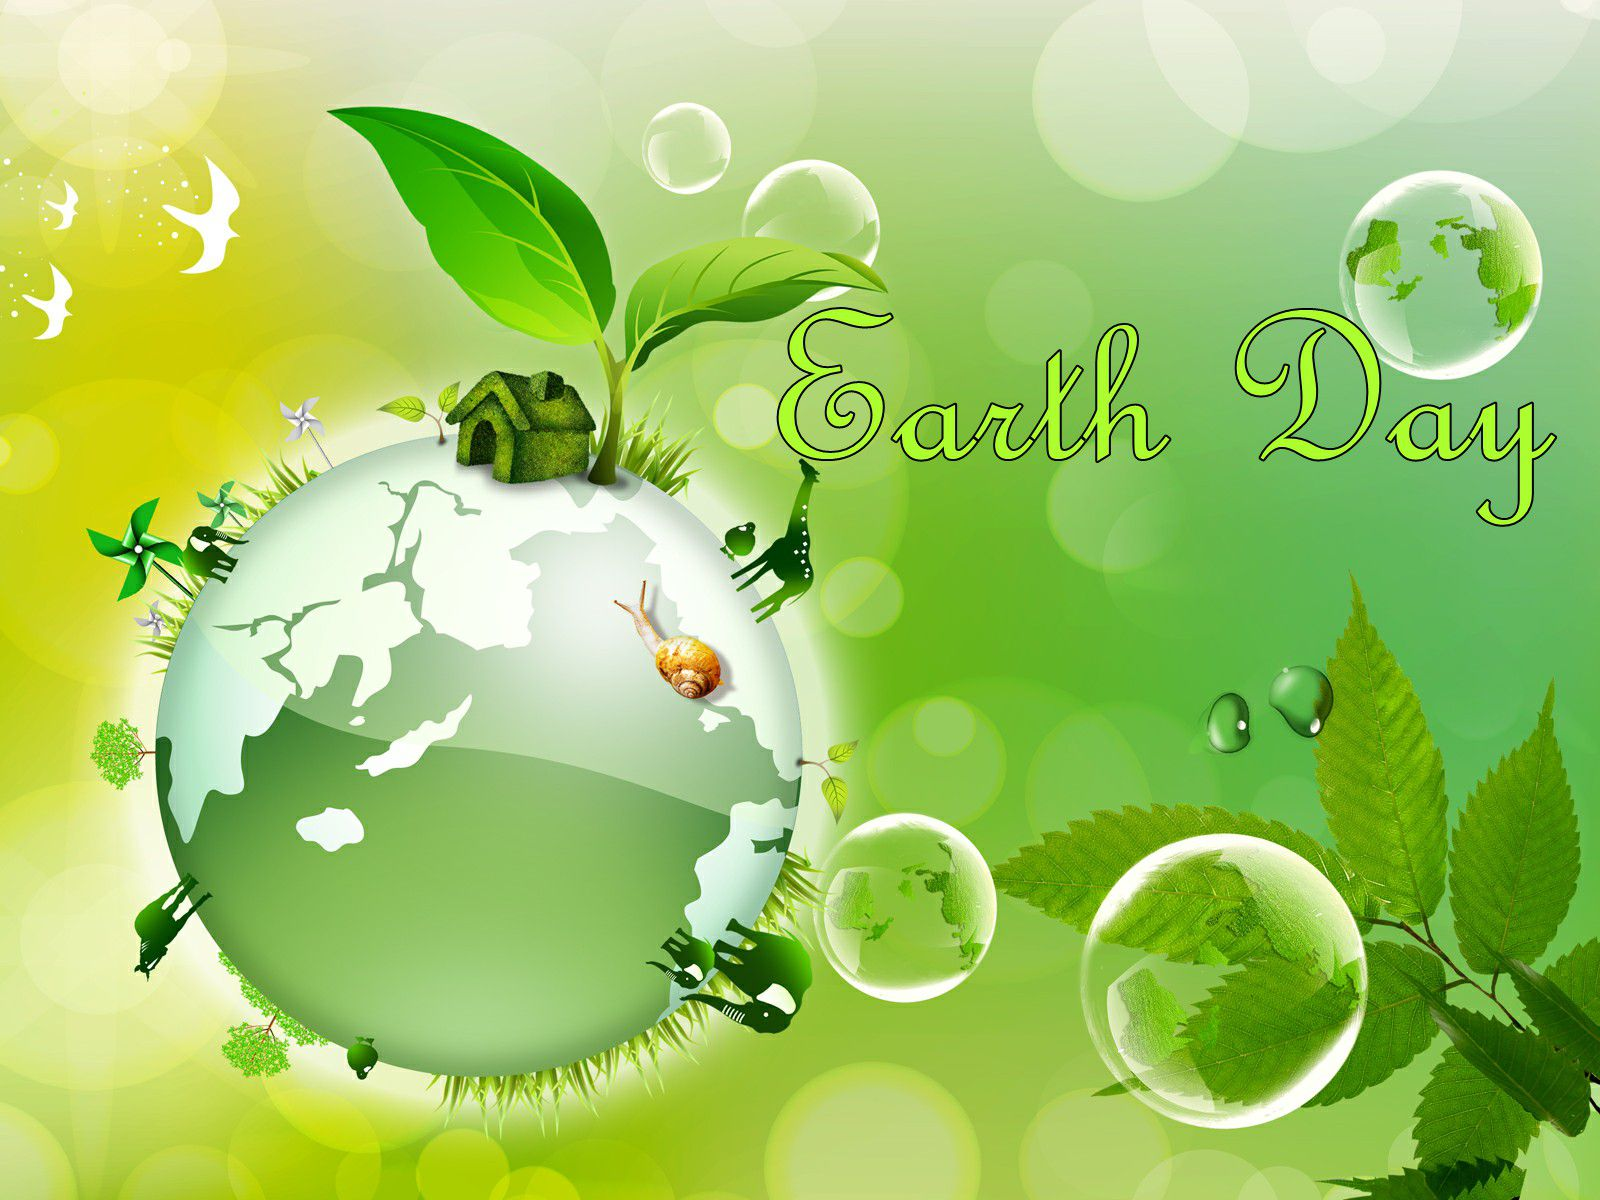 Happy Earth Day Images Hd Wallpaper 1600x1200